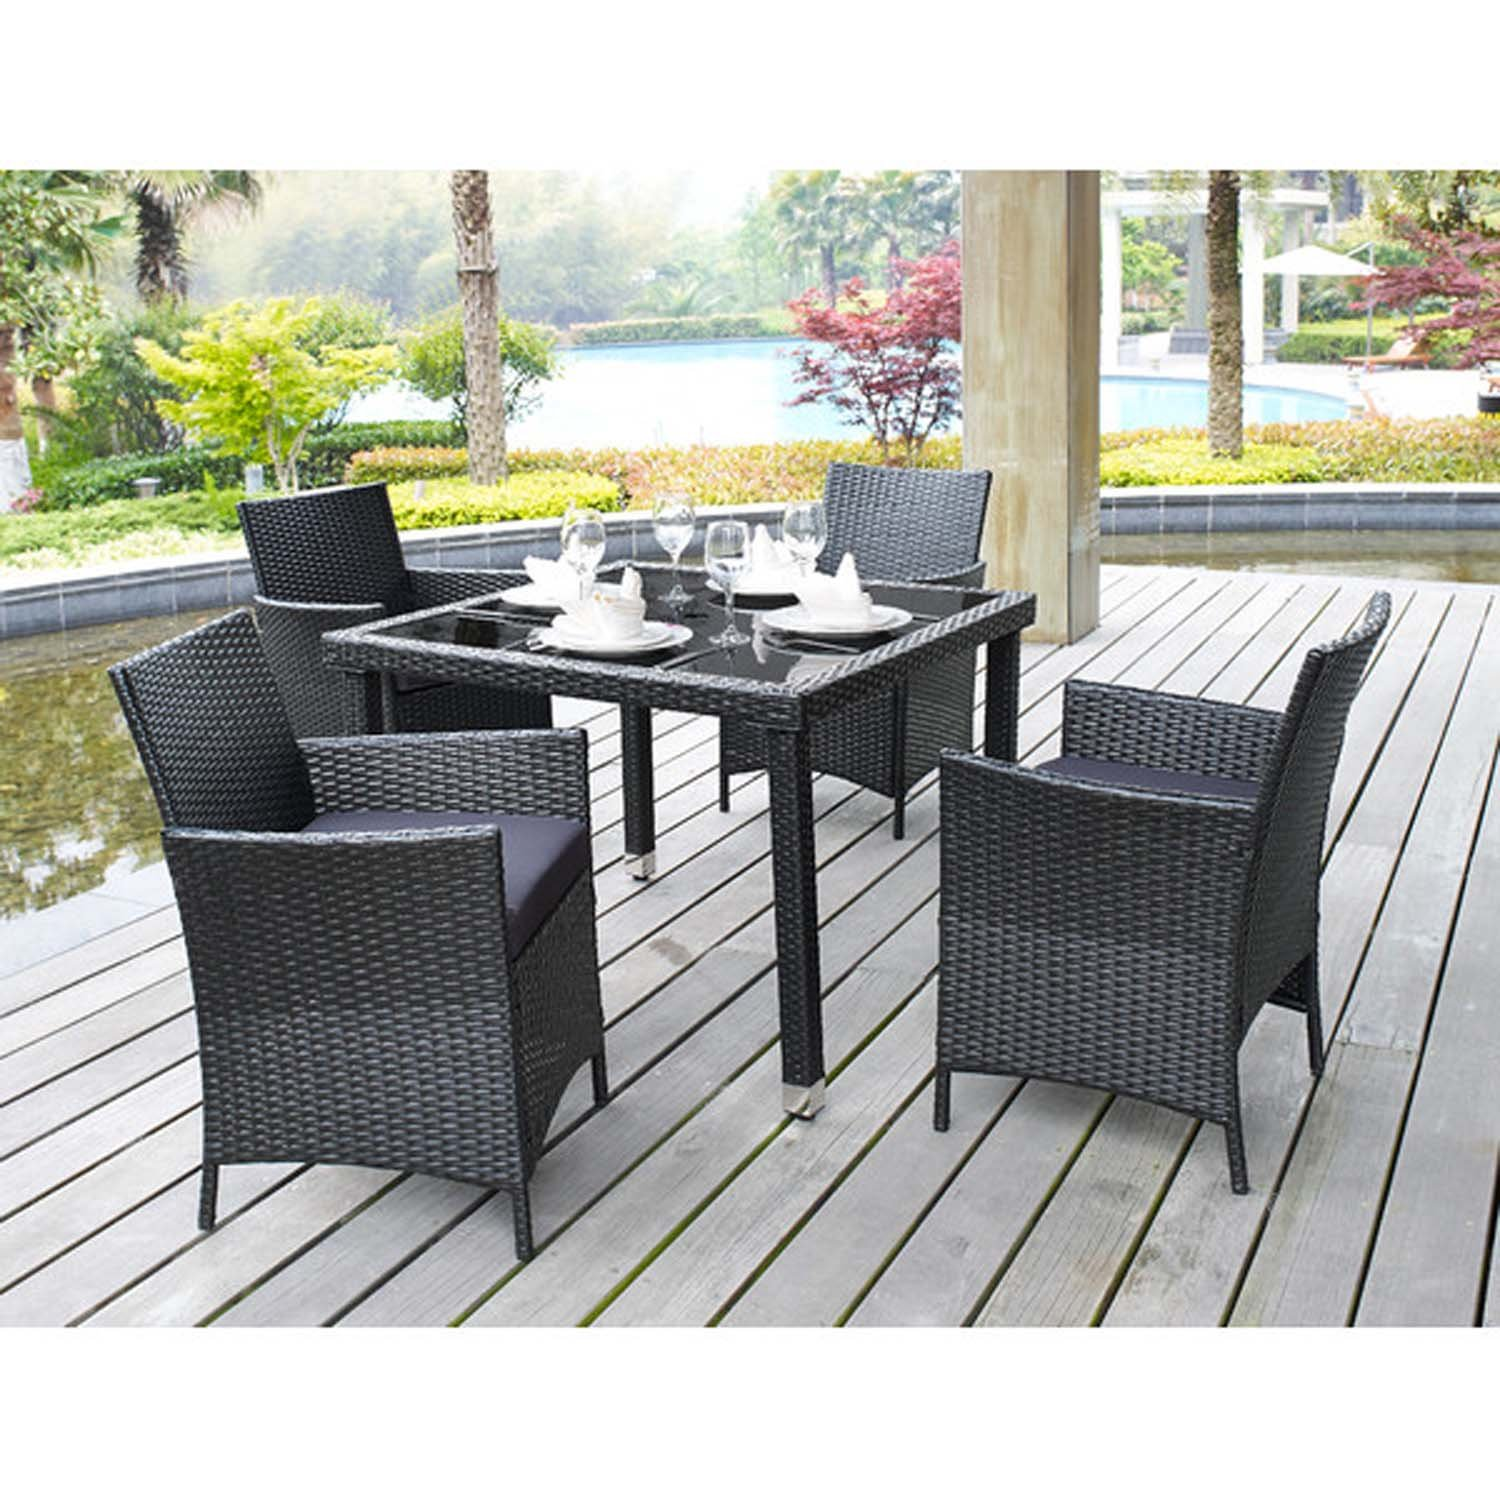 Amazon.com : 5 Piece Outdoor Patio Dining Set with Cushions - UV Weather  Resistant Rattan Wicker Heavy Duty Steel Powder Coated Furniture -  Rectangular ... - Amazon.com : 5 Piece Outdoor Patio Dining Set With Cushions - UV